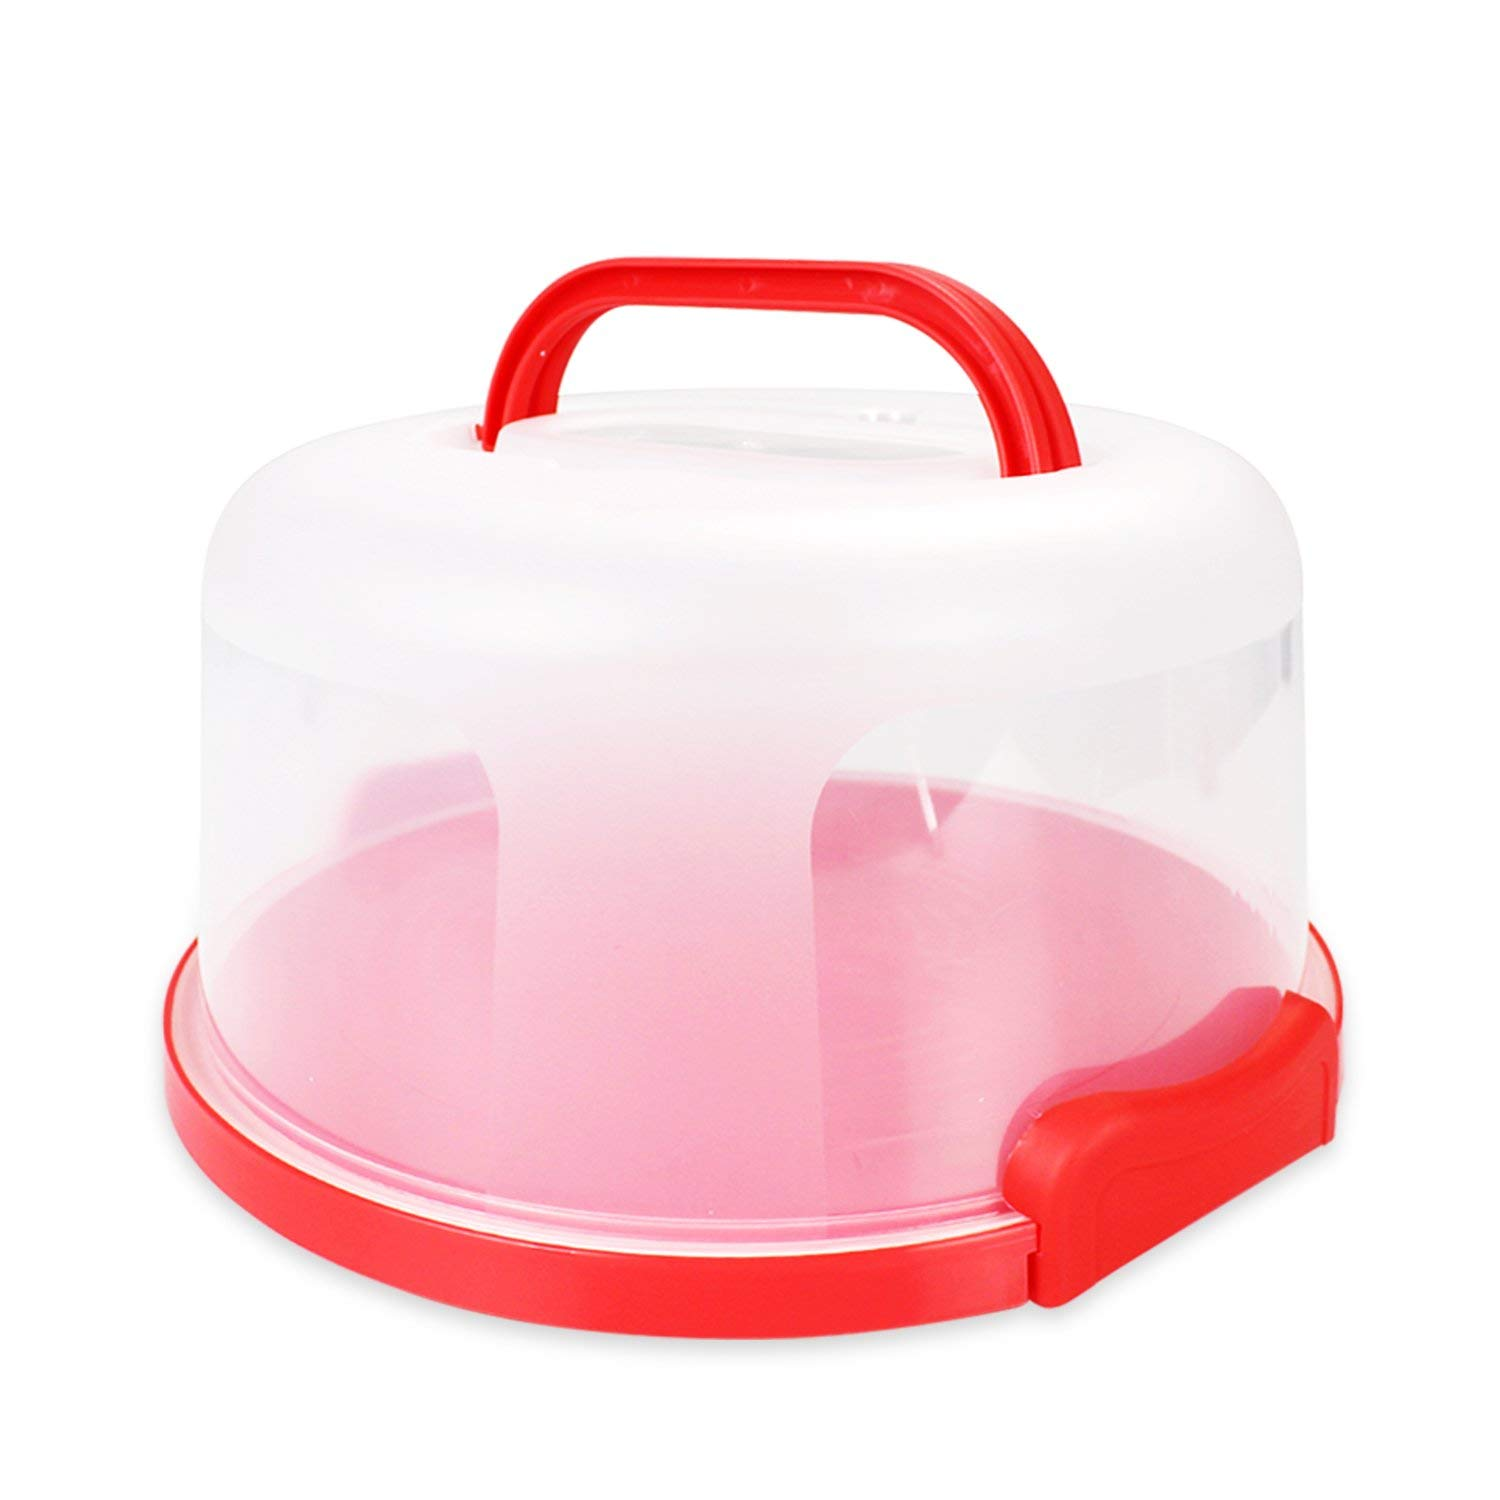 Cake Carrier by Sweet Course Official 12'' Large Round Container by Sweet Course (Image #1)